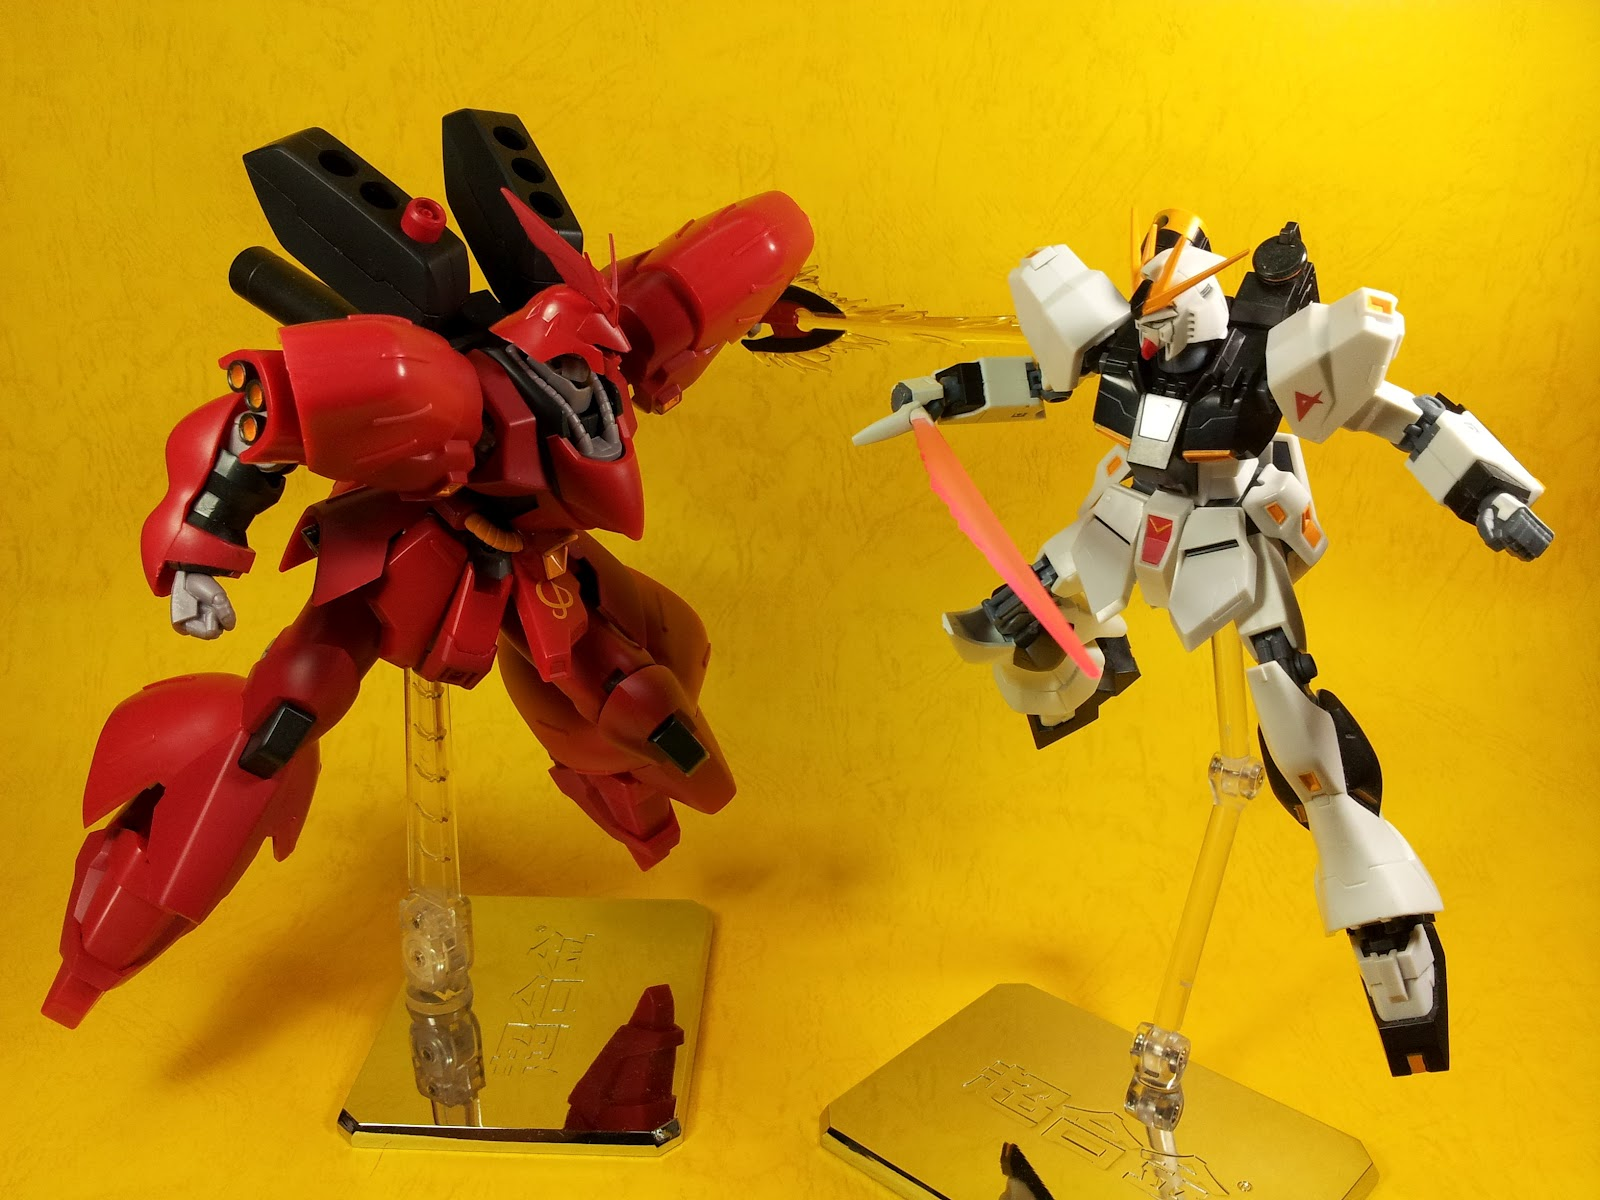 Geekbox.net Community Discussion Forums • View topic - Gunpla ...